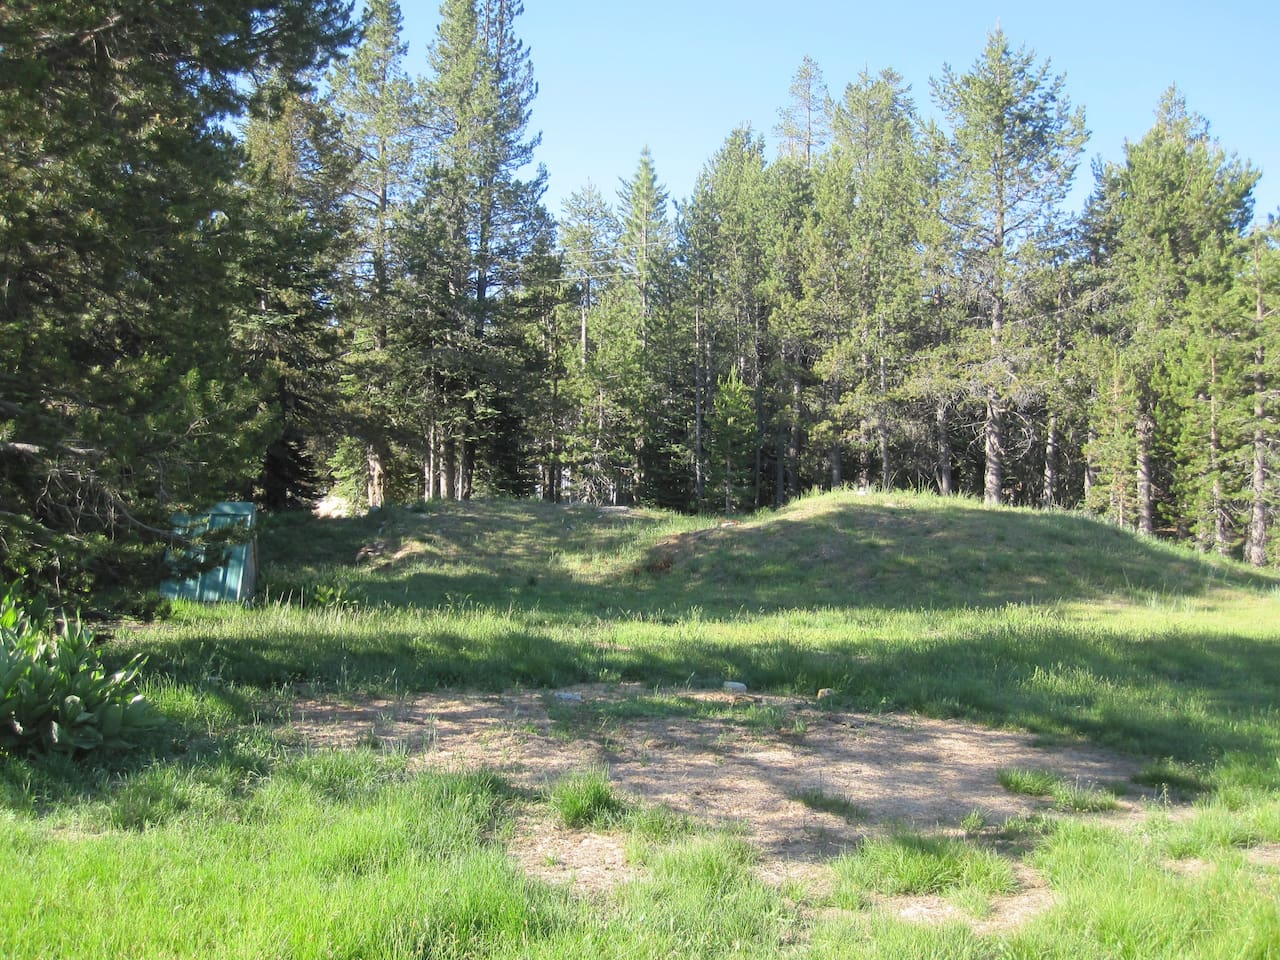 Tamrack Lodge at Bear Valley has plenty of land for group camping